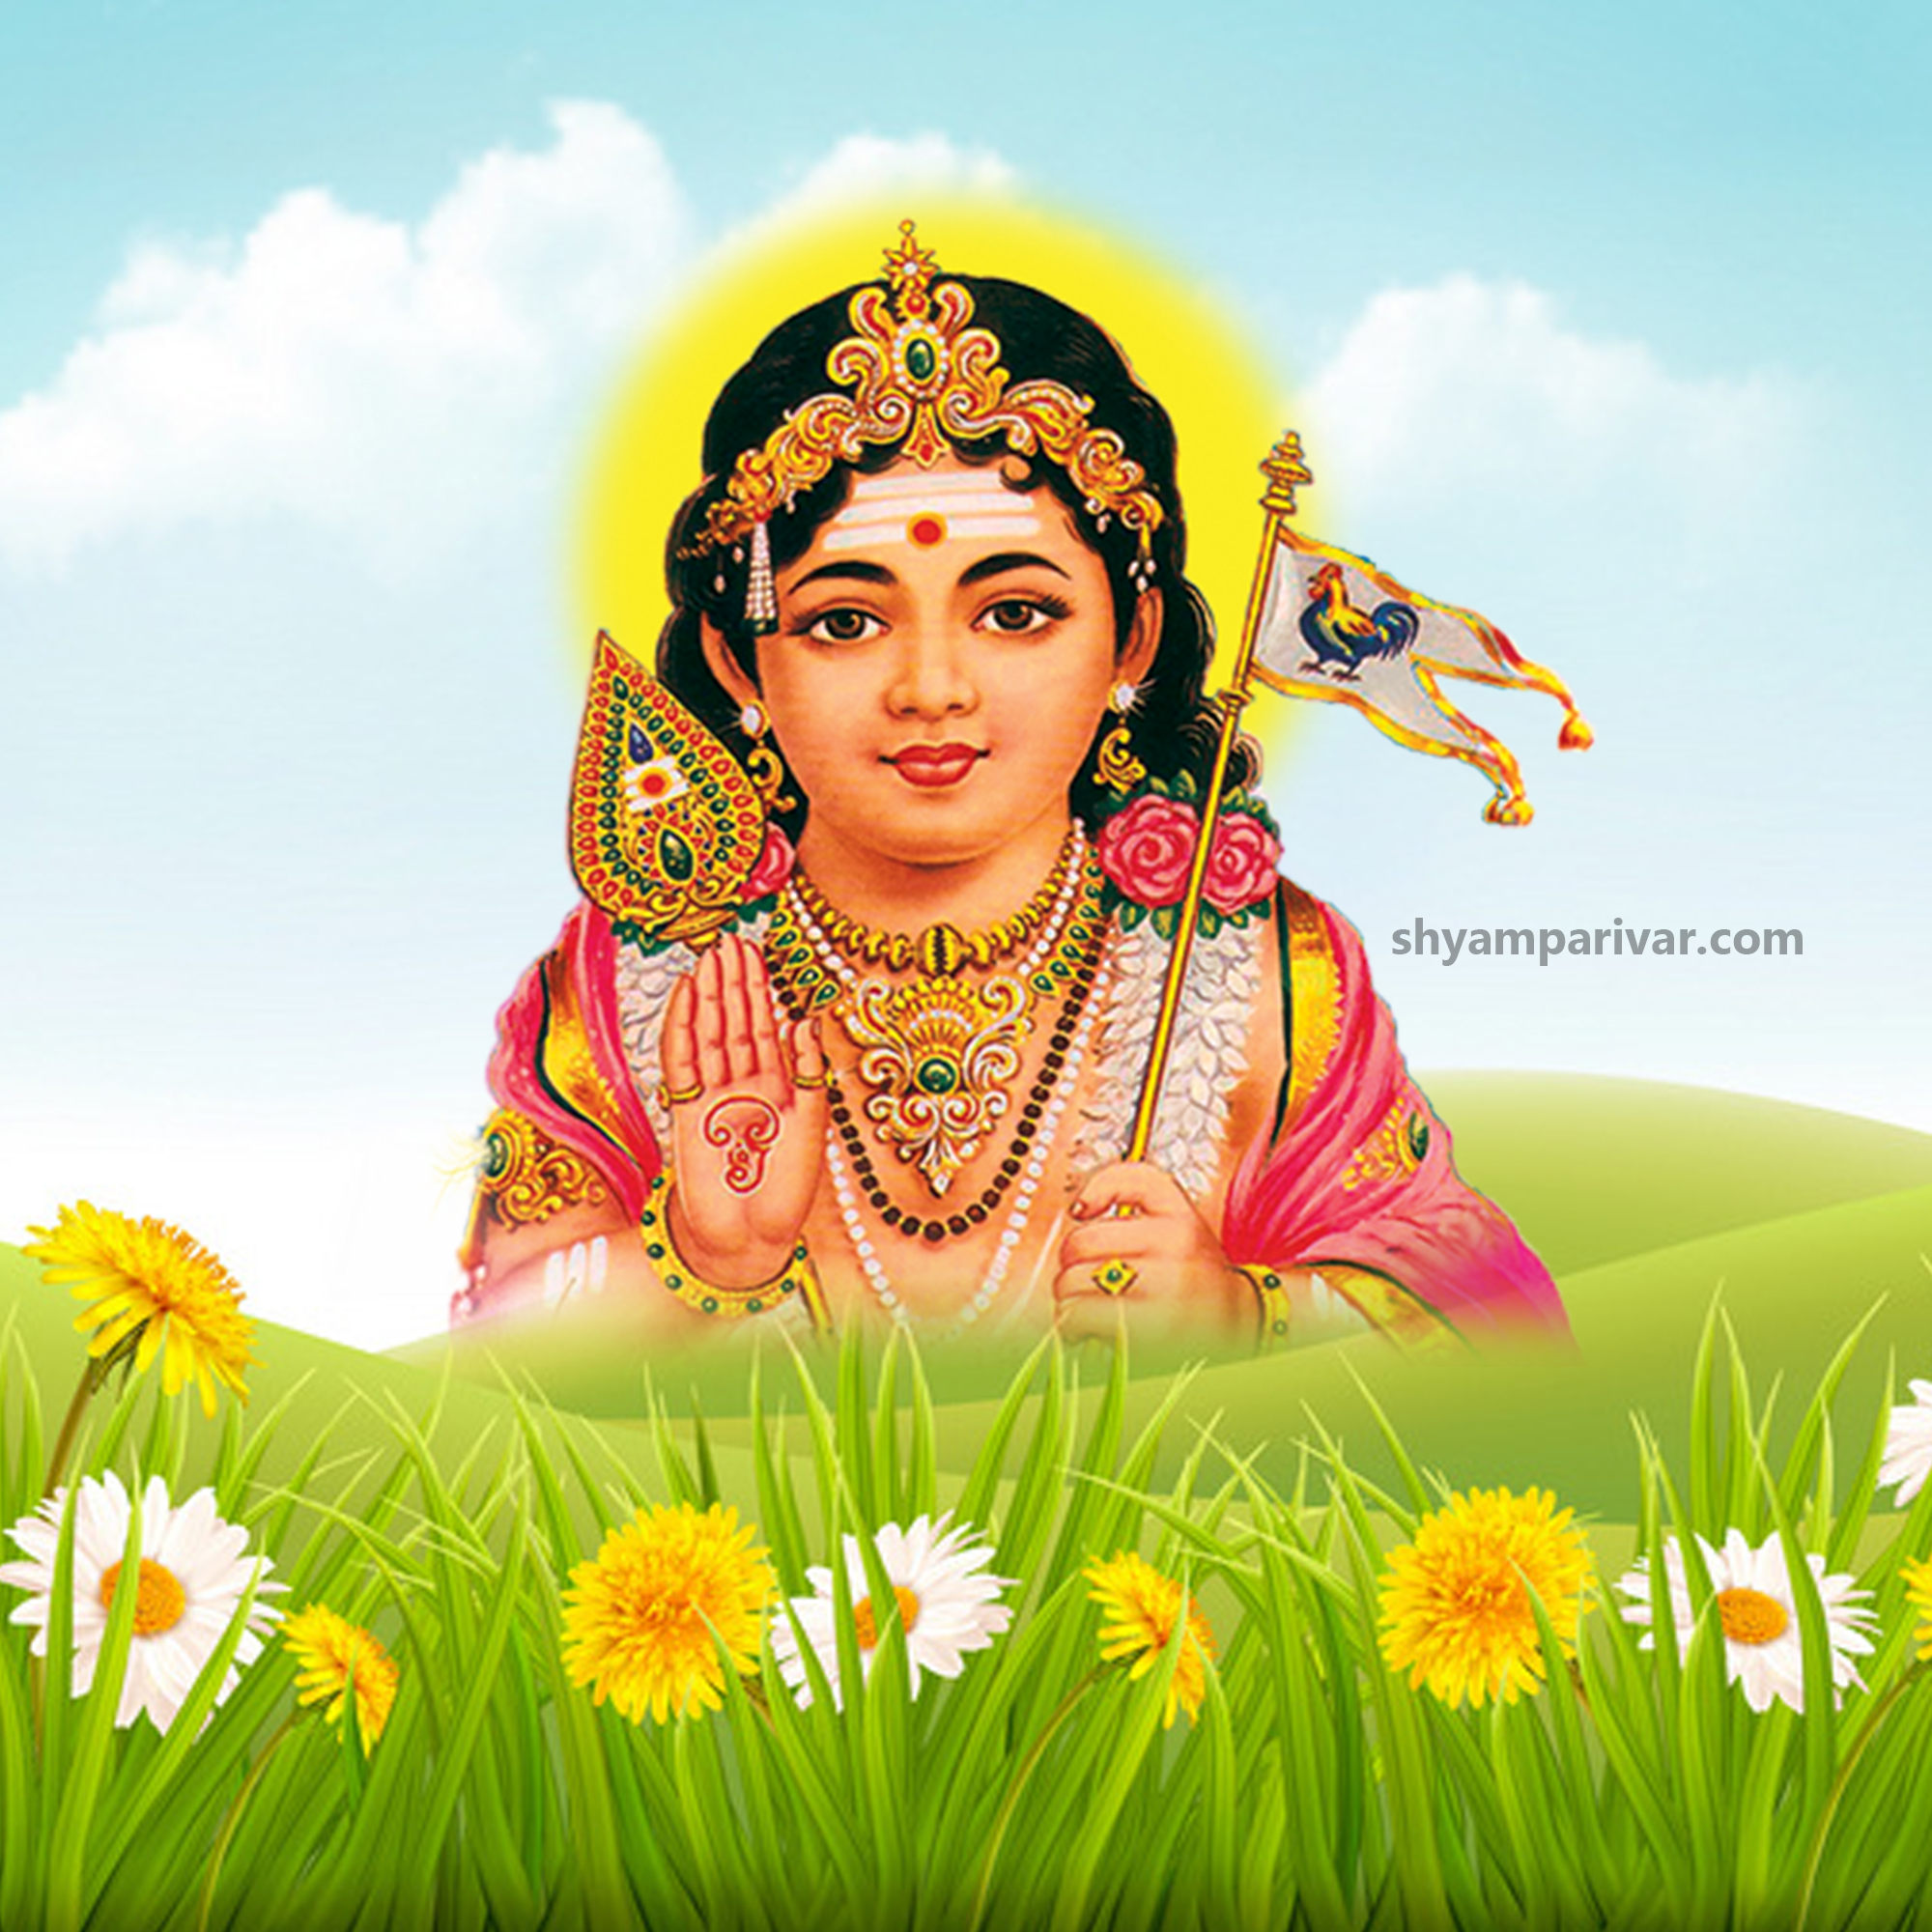 lord murugan hd images and wallpaper